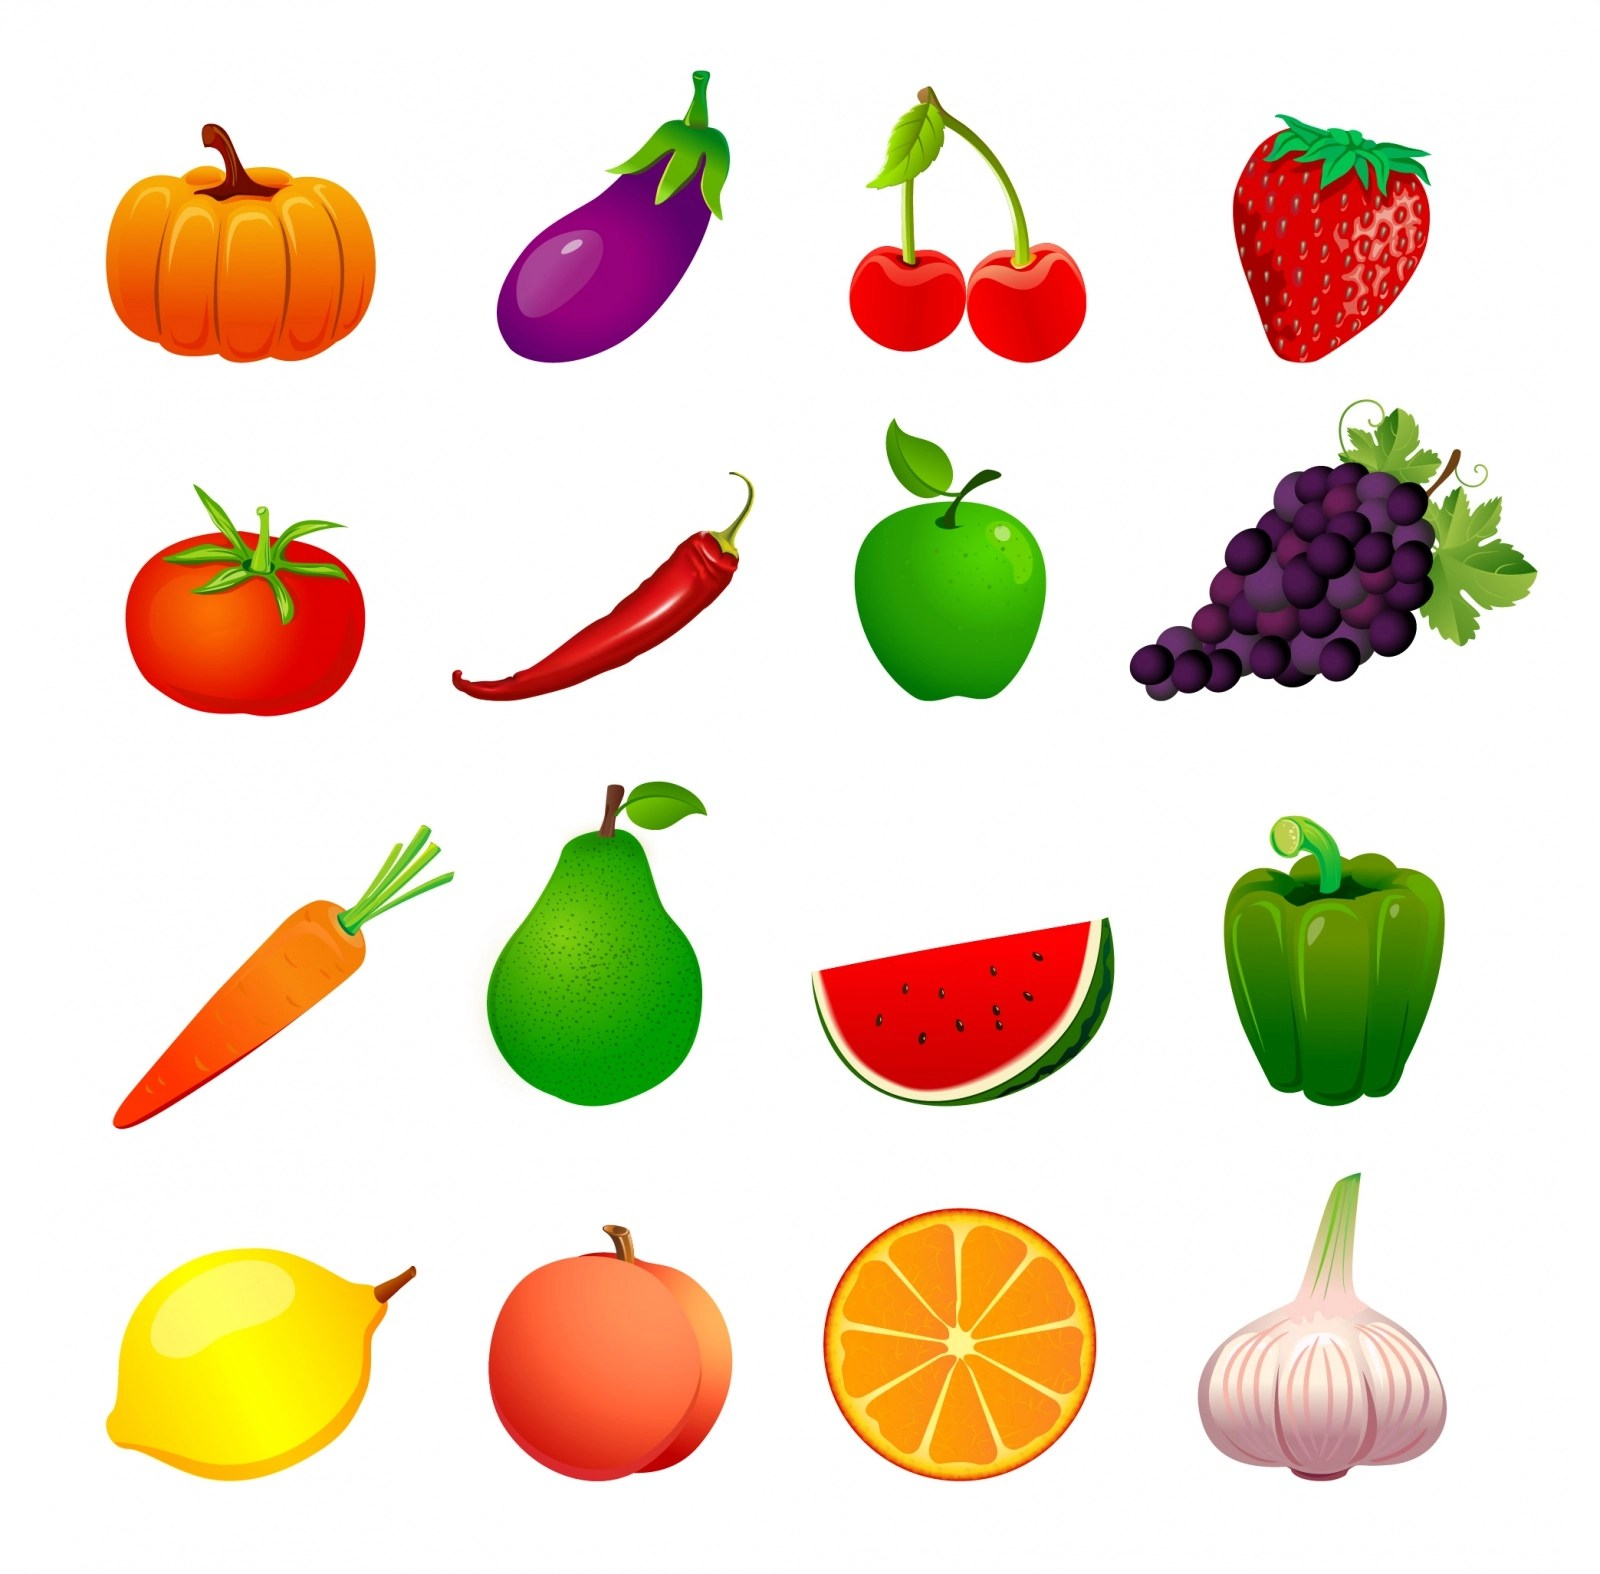 Download 50 Free Vector Fruits Amp Vegetables Icons